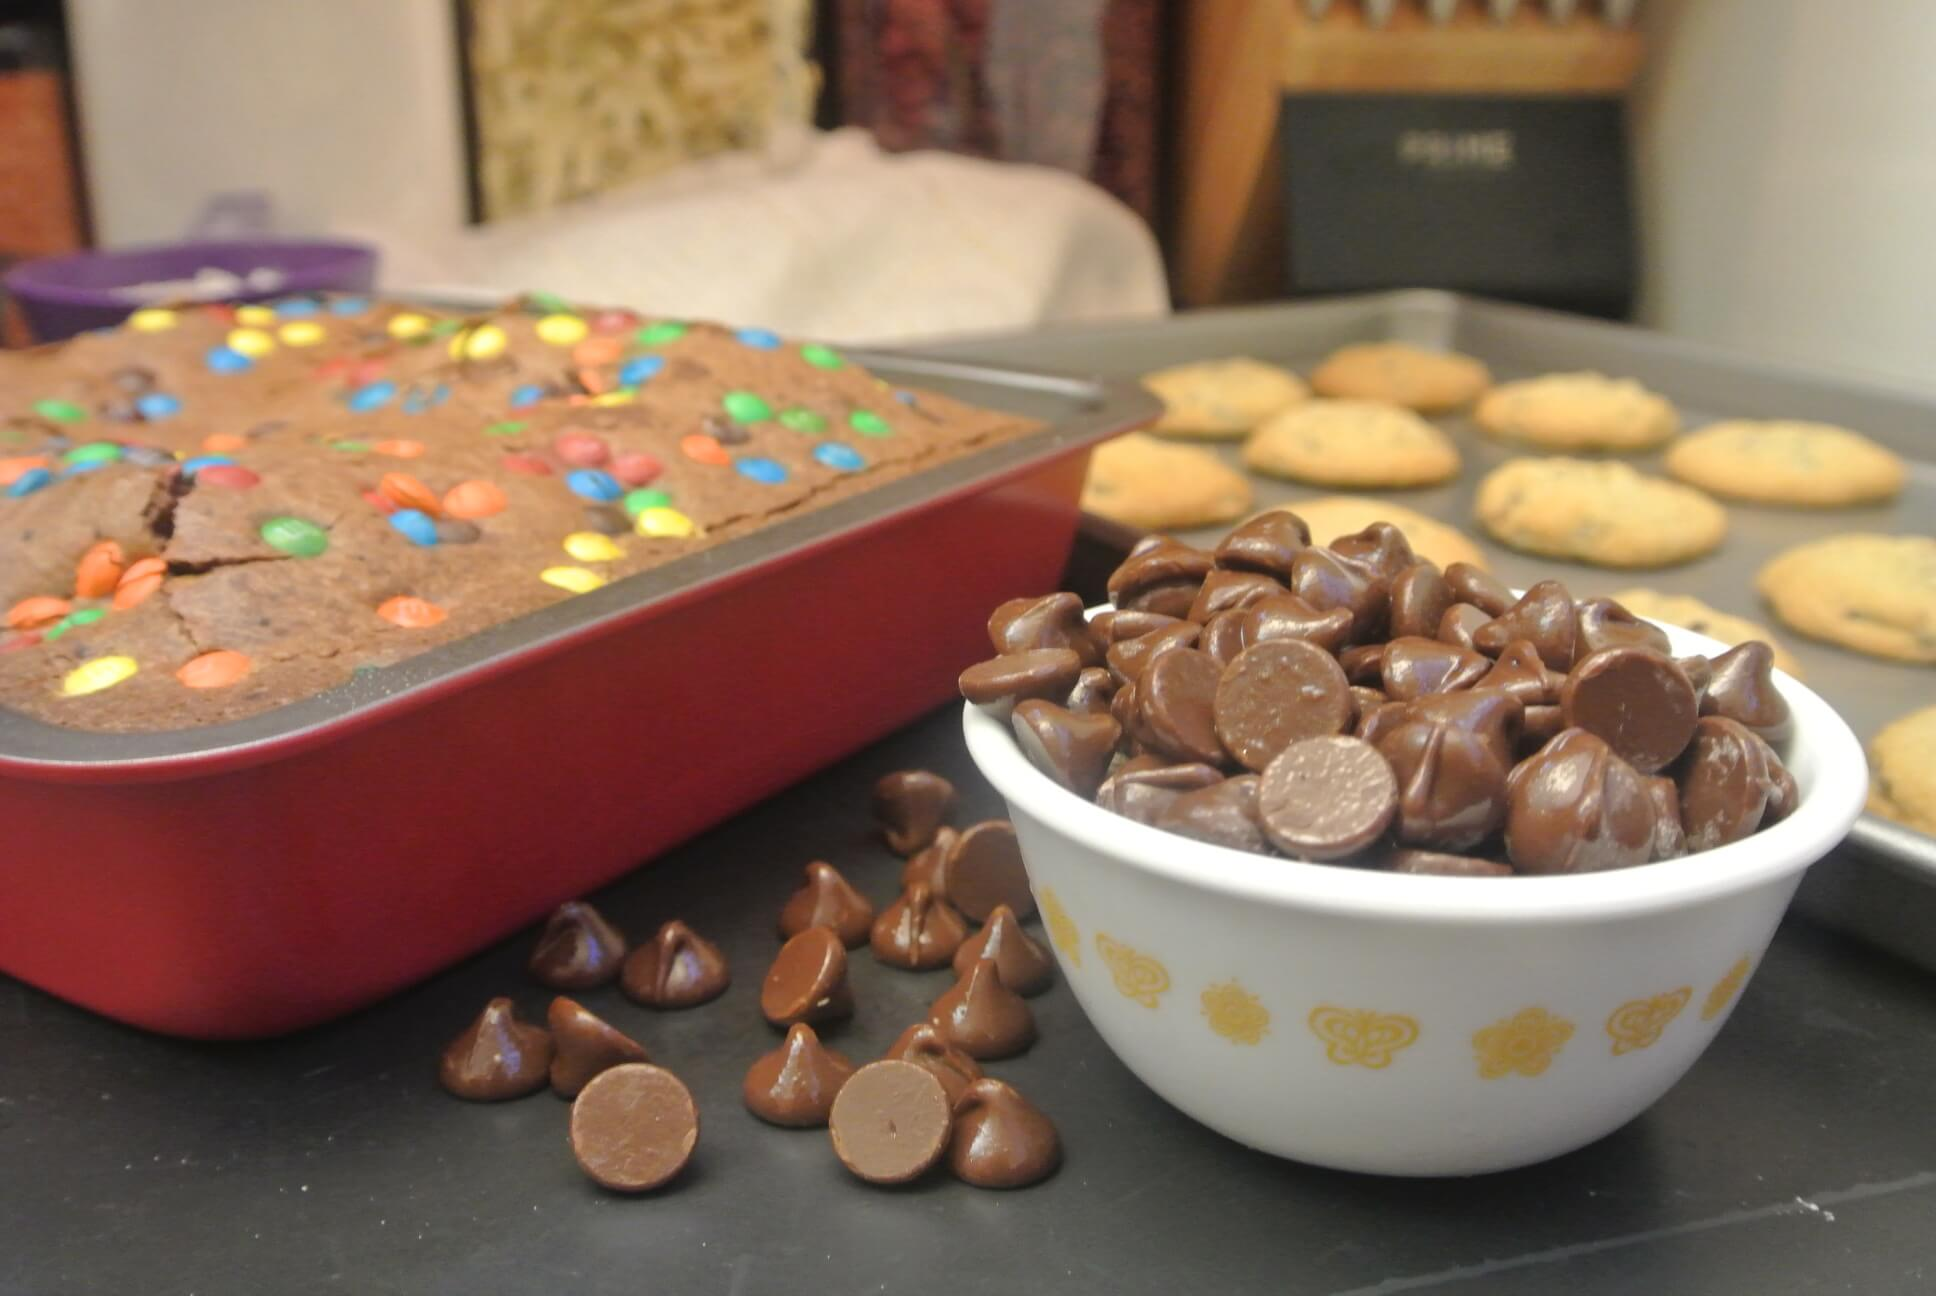 4) M&M Brownies and Chocolate Chip Cookies with Baker's Secret Bake & Serve: